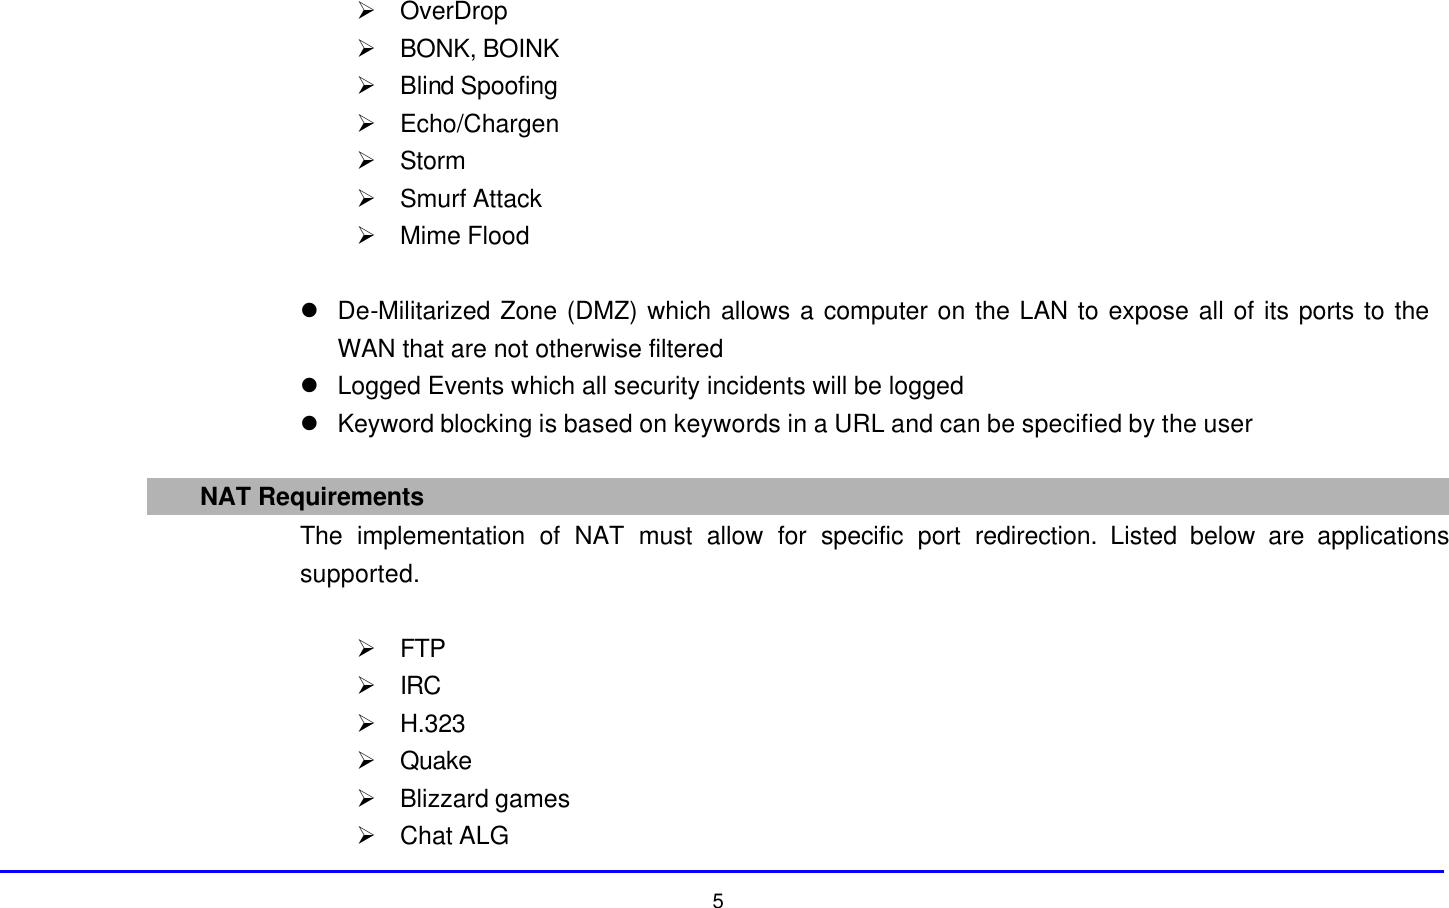 5 Ø OverDrop Ø BONK, BOINK Ø Blind Spoofing Ø Echo/Chargen Ø Storm Ø Smurf Attack Ø Mime Flood  l De-Militarized Zone (DMZ) which allows a computer on the LAN to expose all of its ports to the WAN that are not otherwise filtered l Logged Events which all security incidents will be logged l Keyword blocking is based on keywords in a URL and can be specified by the user  NAT Requirements  The implementation of NAT must allow for specific port redirection. Listed below are applications supported.  Ø FTP Ø IRC Ø H.323 Ø Quake Ø Blizzard games Ø Chat ALG